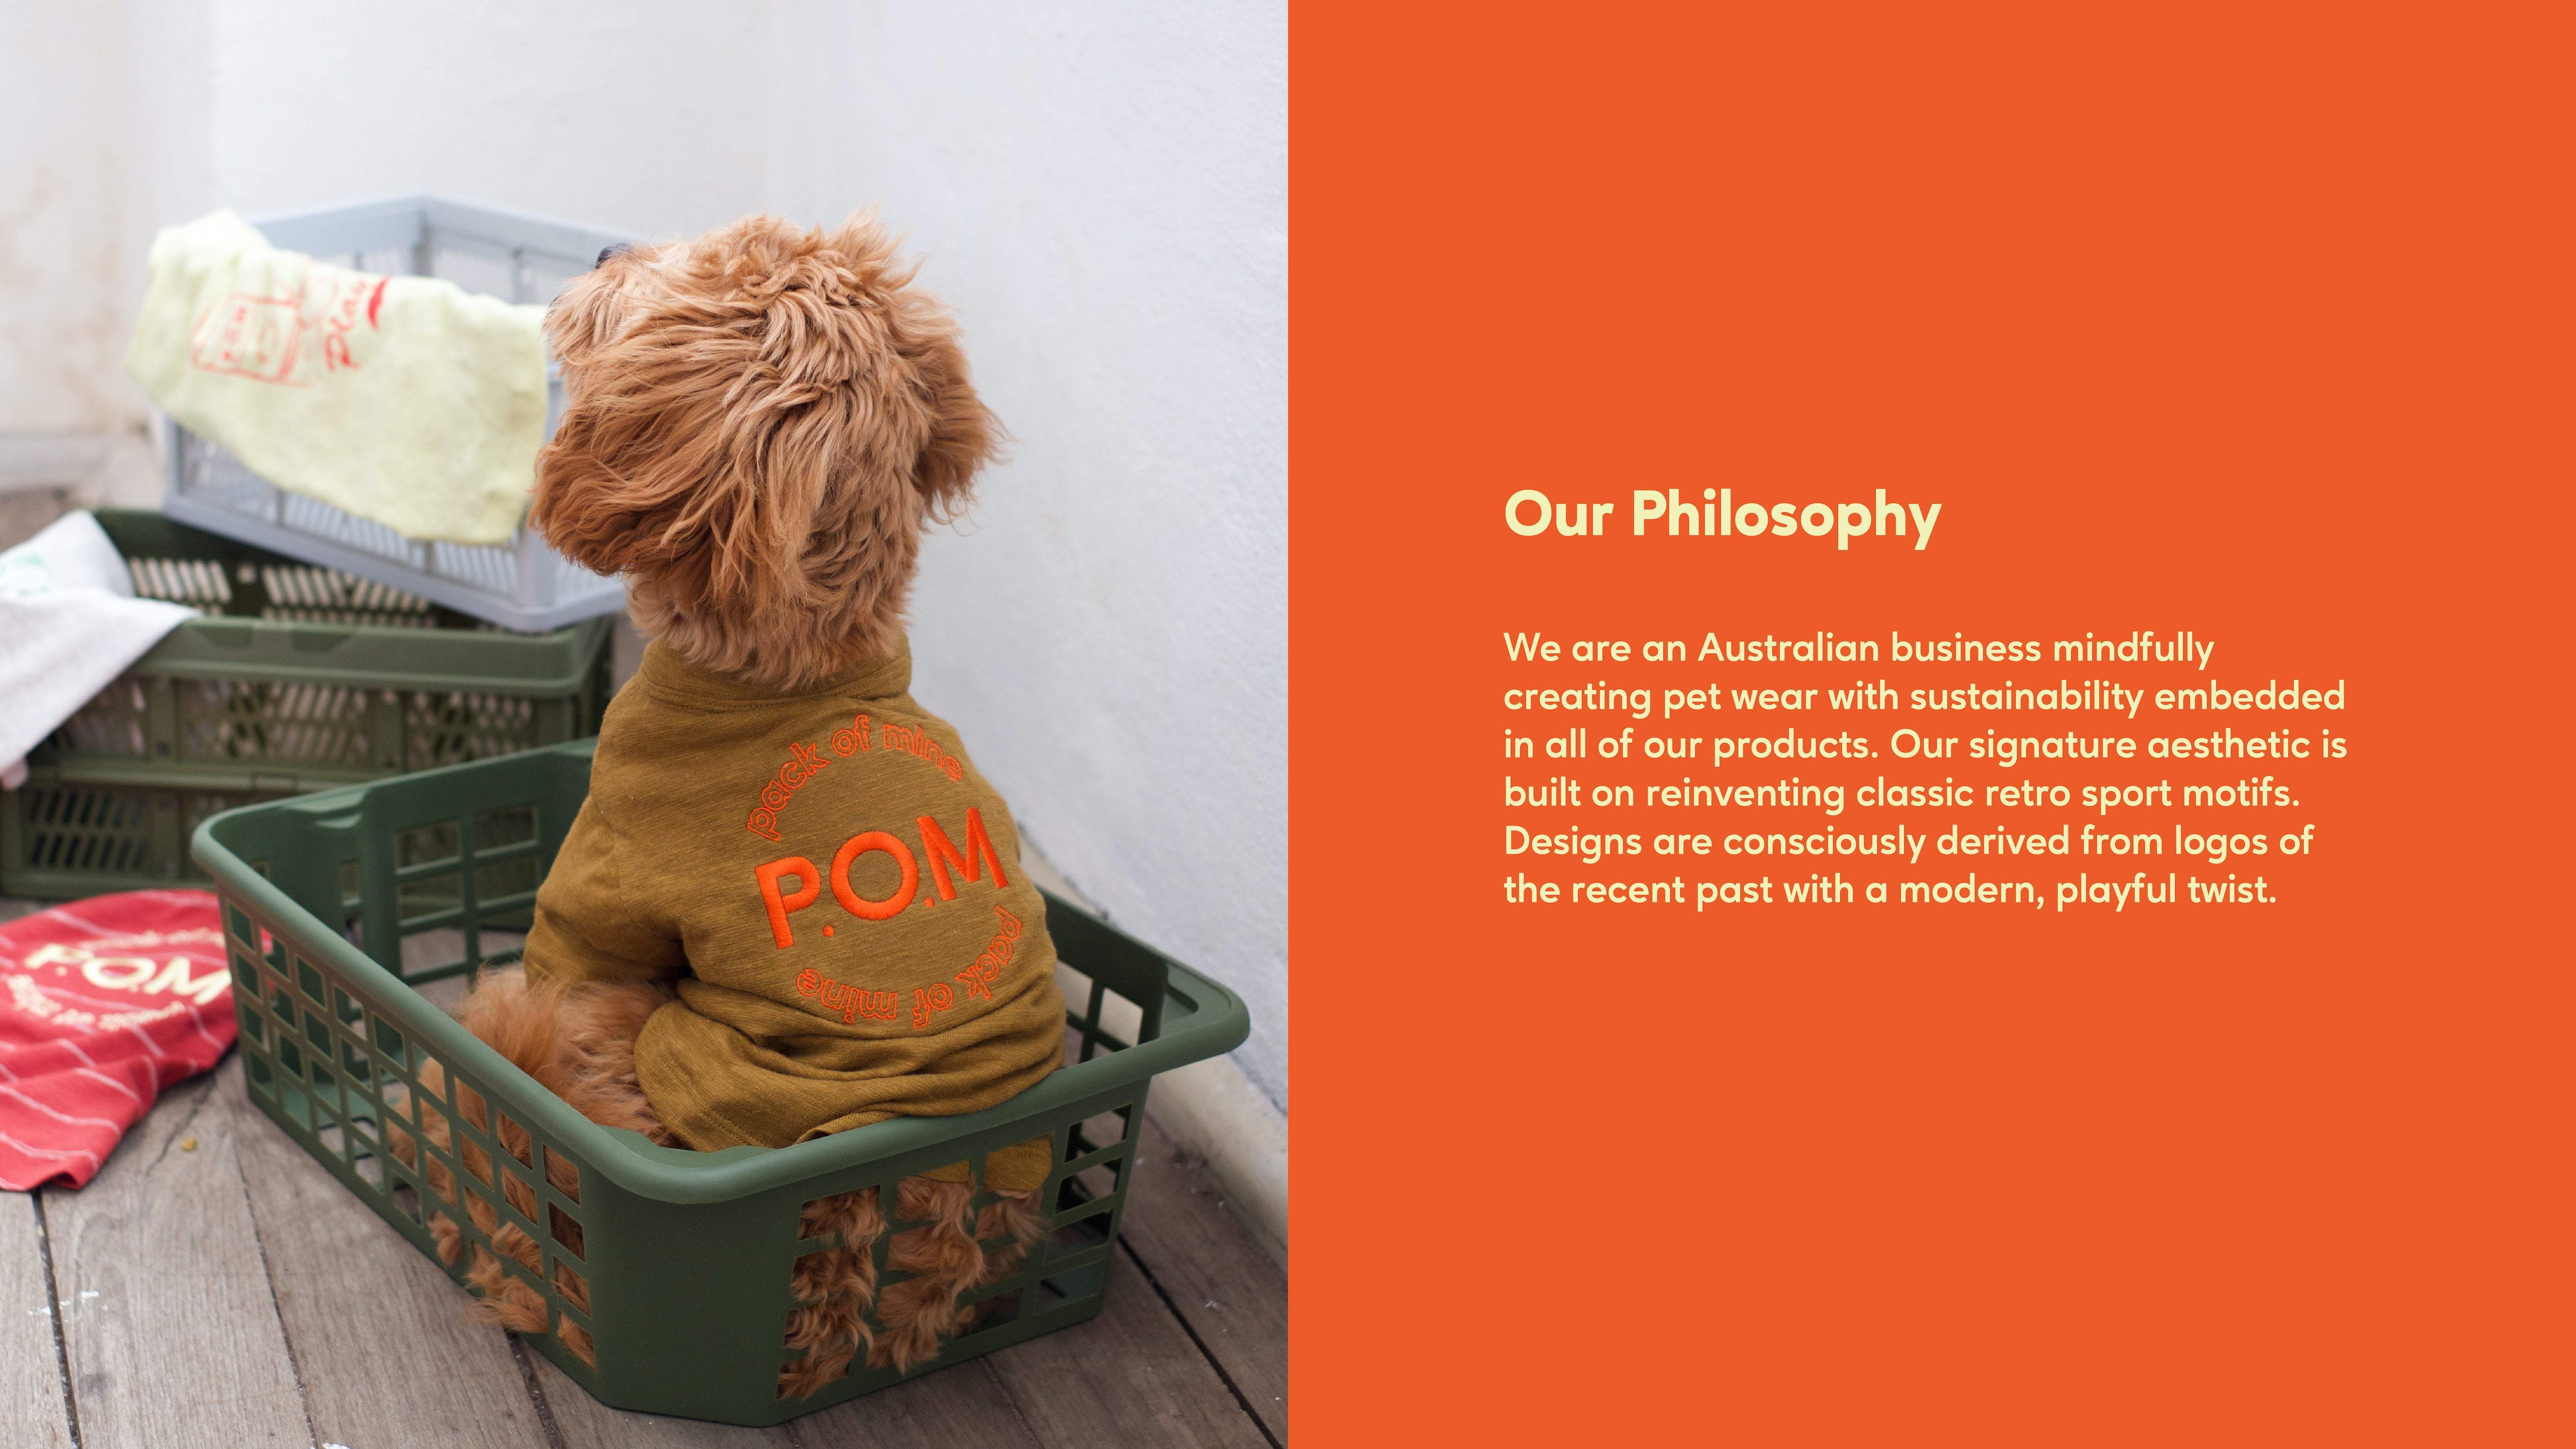 Our Philosophy We are an Australian business mindfully creating pet wear with sustainability embedded in all of our products. Our signature aesthetic is built on reinventing classic retro sport motifs. Designs are consciously derived from logos of the recent past with a modern, playful twist.